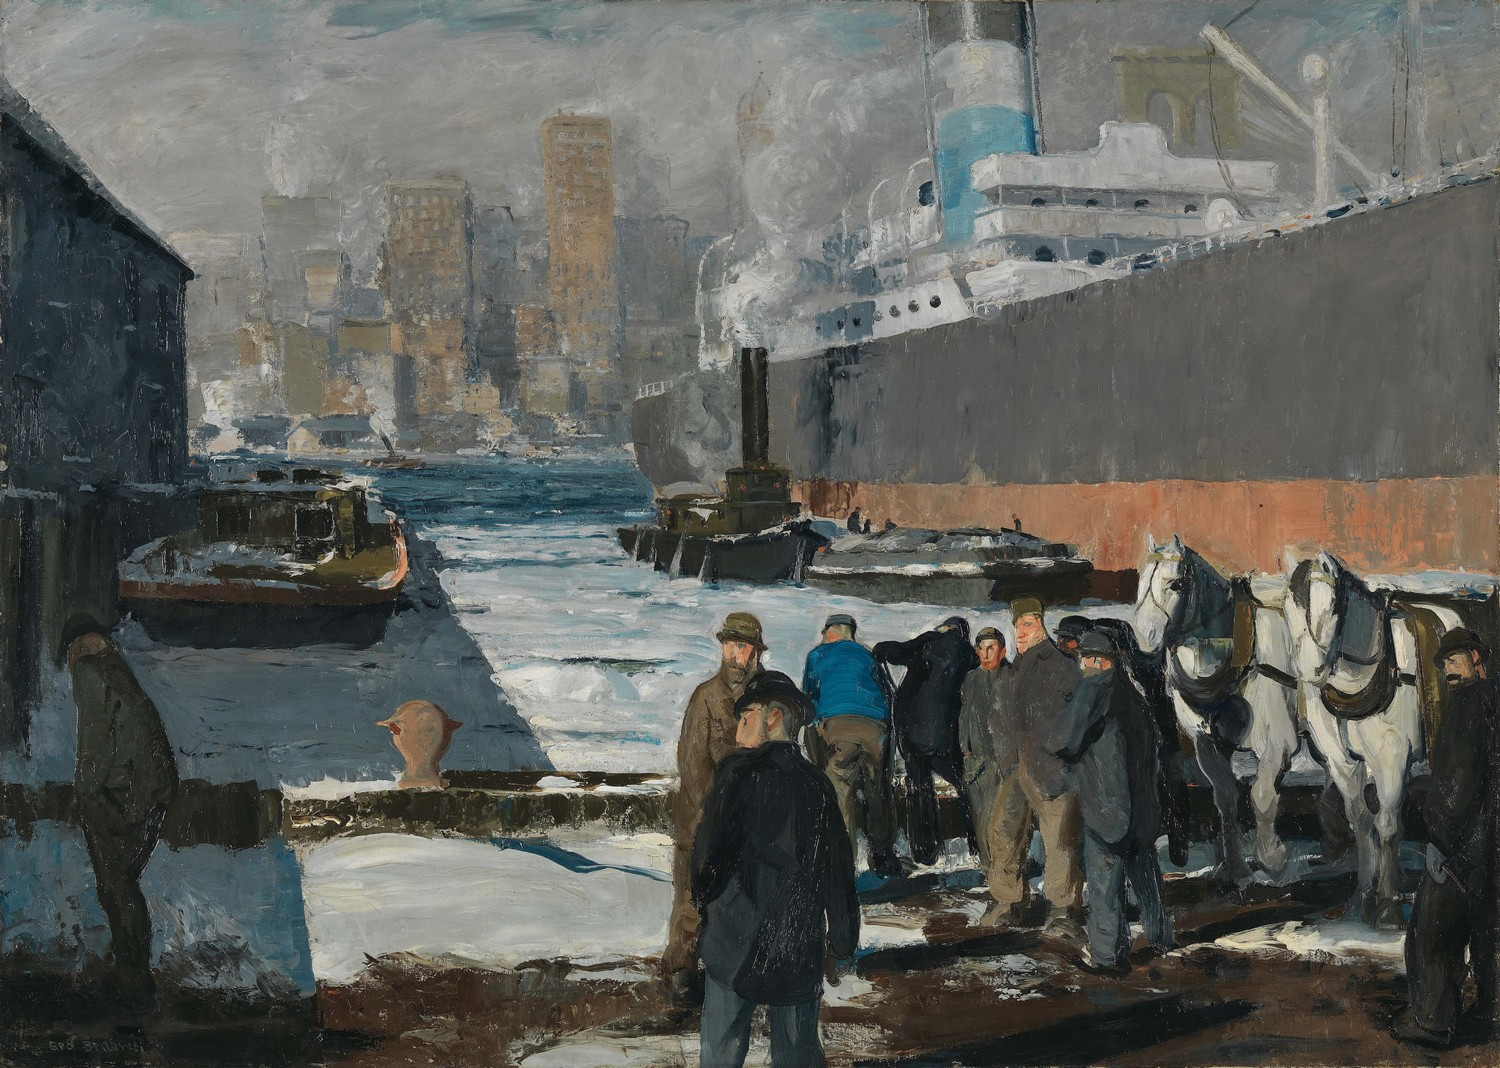 Tableau Men of the Docks by G Bellows © National Gallery